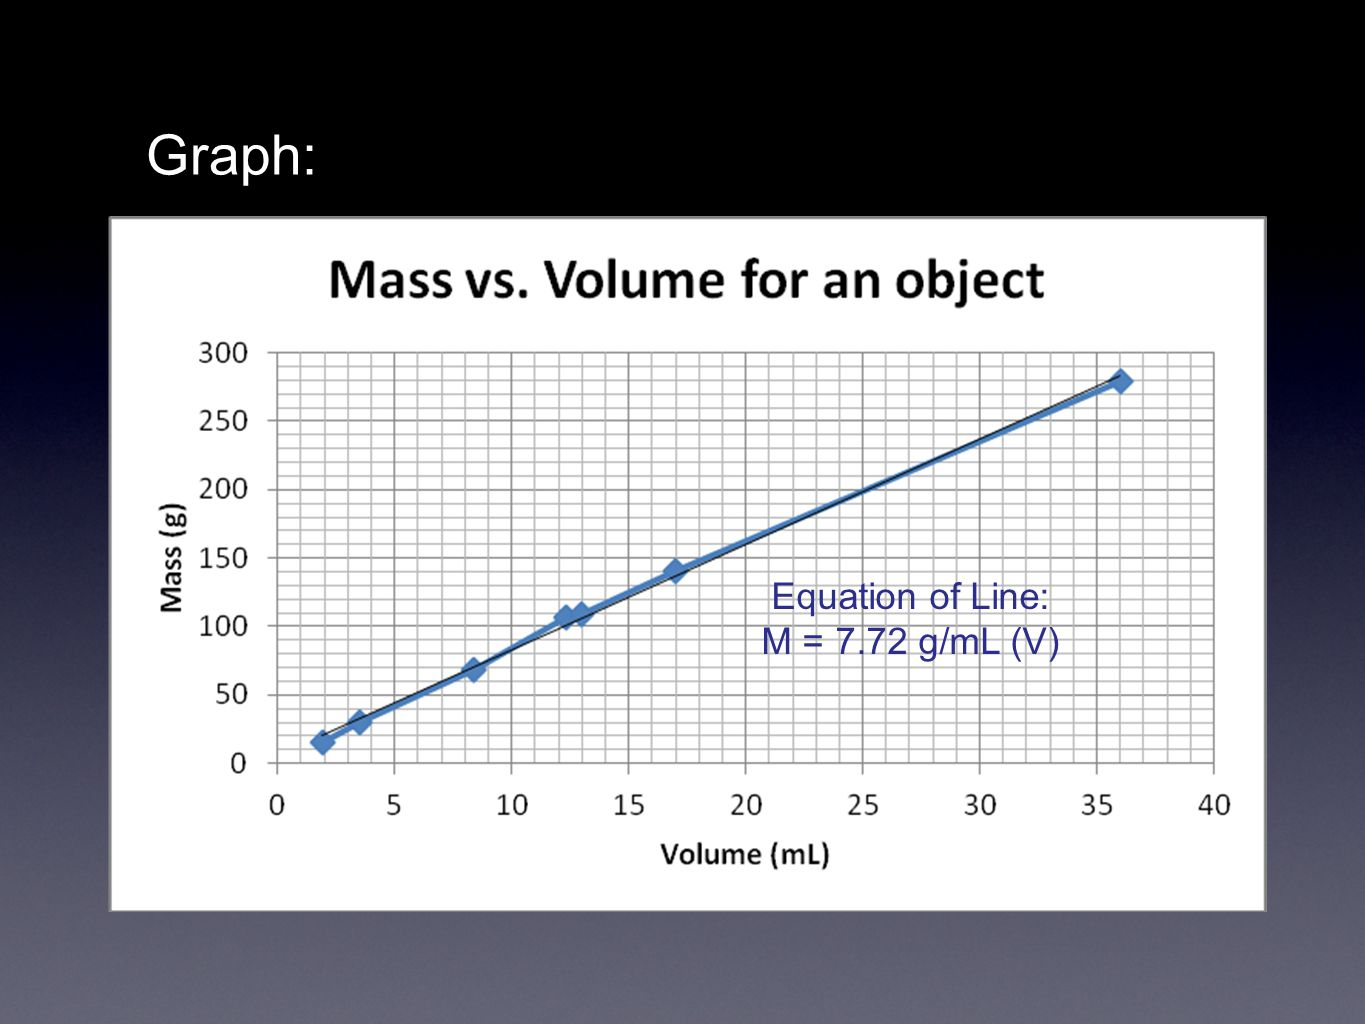 Graph: Equation of Line: M = 7.72 g/mL (V)